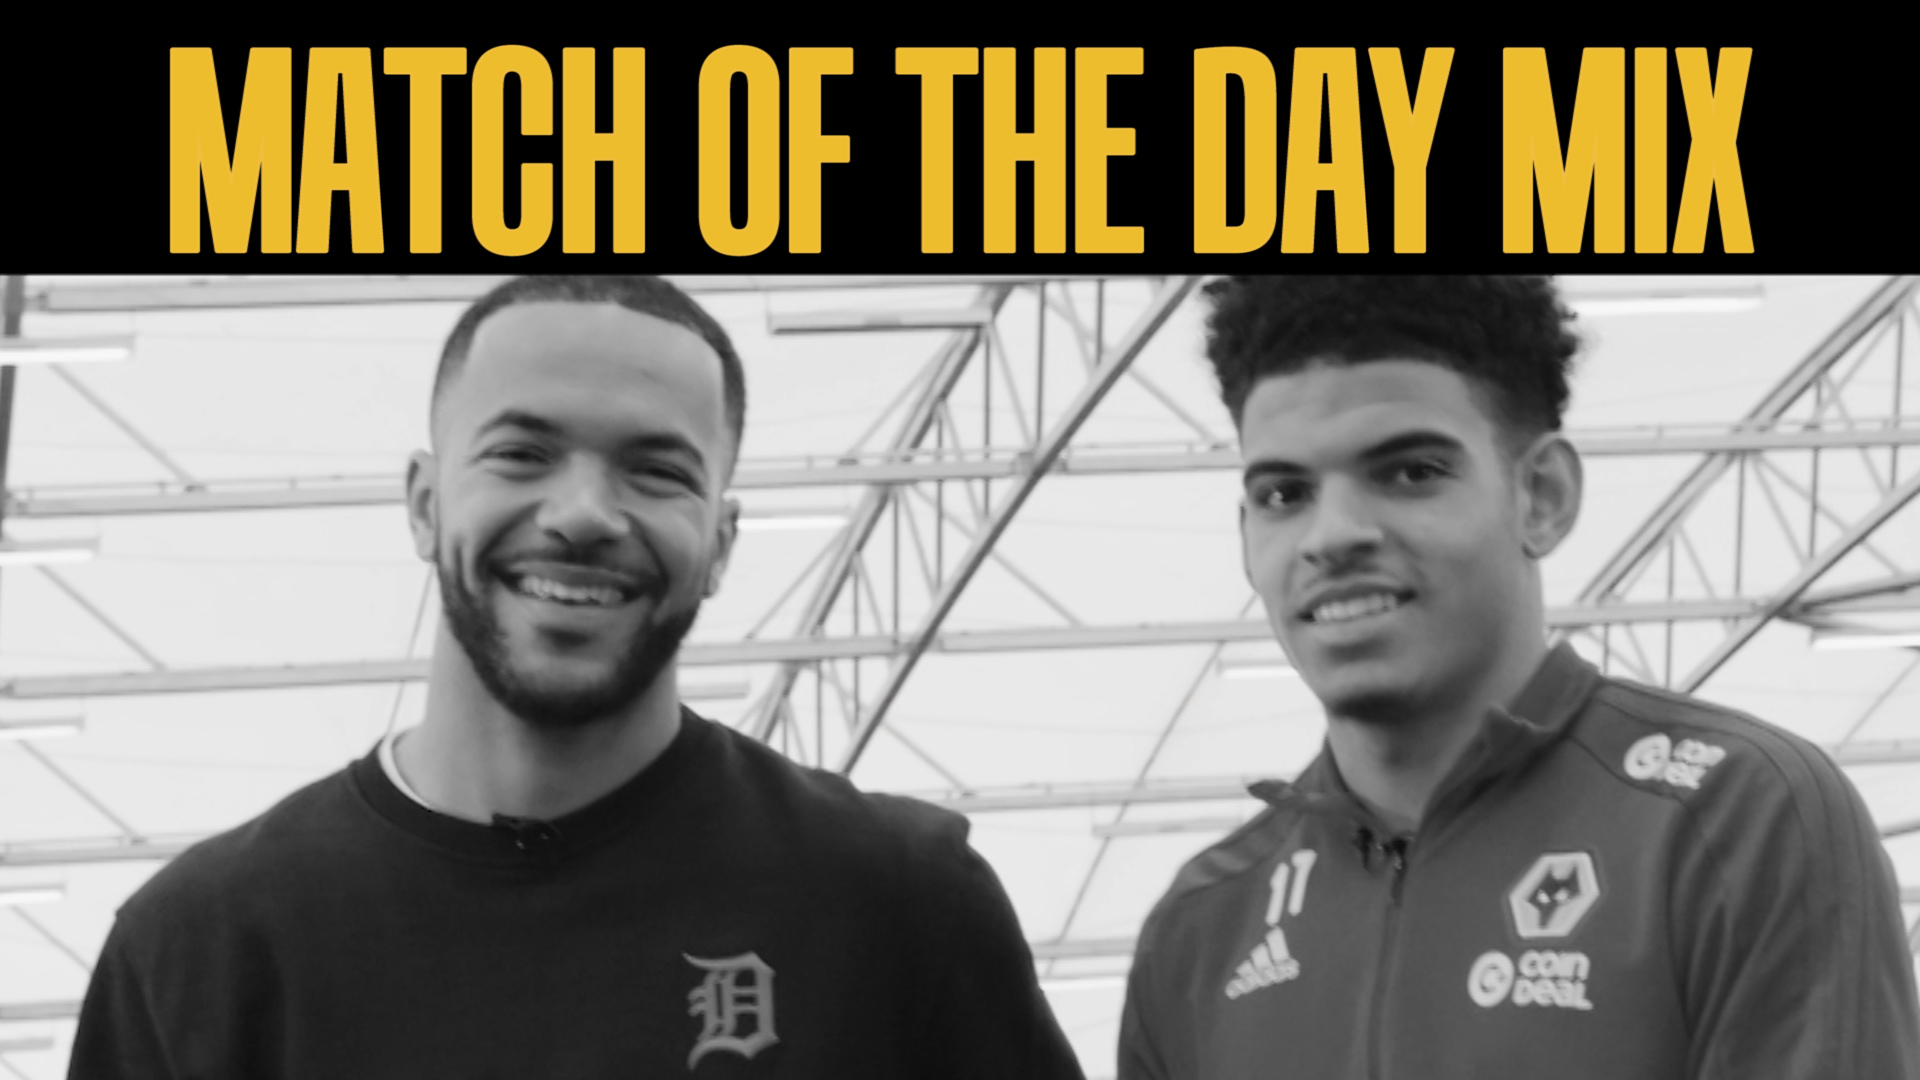 Match of the Day Mix: Gibbs-White on Drake, Usher and his initiation song